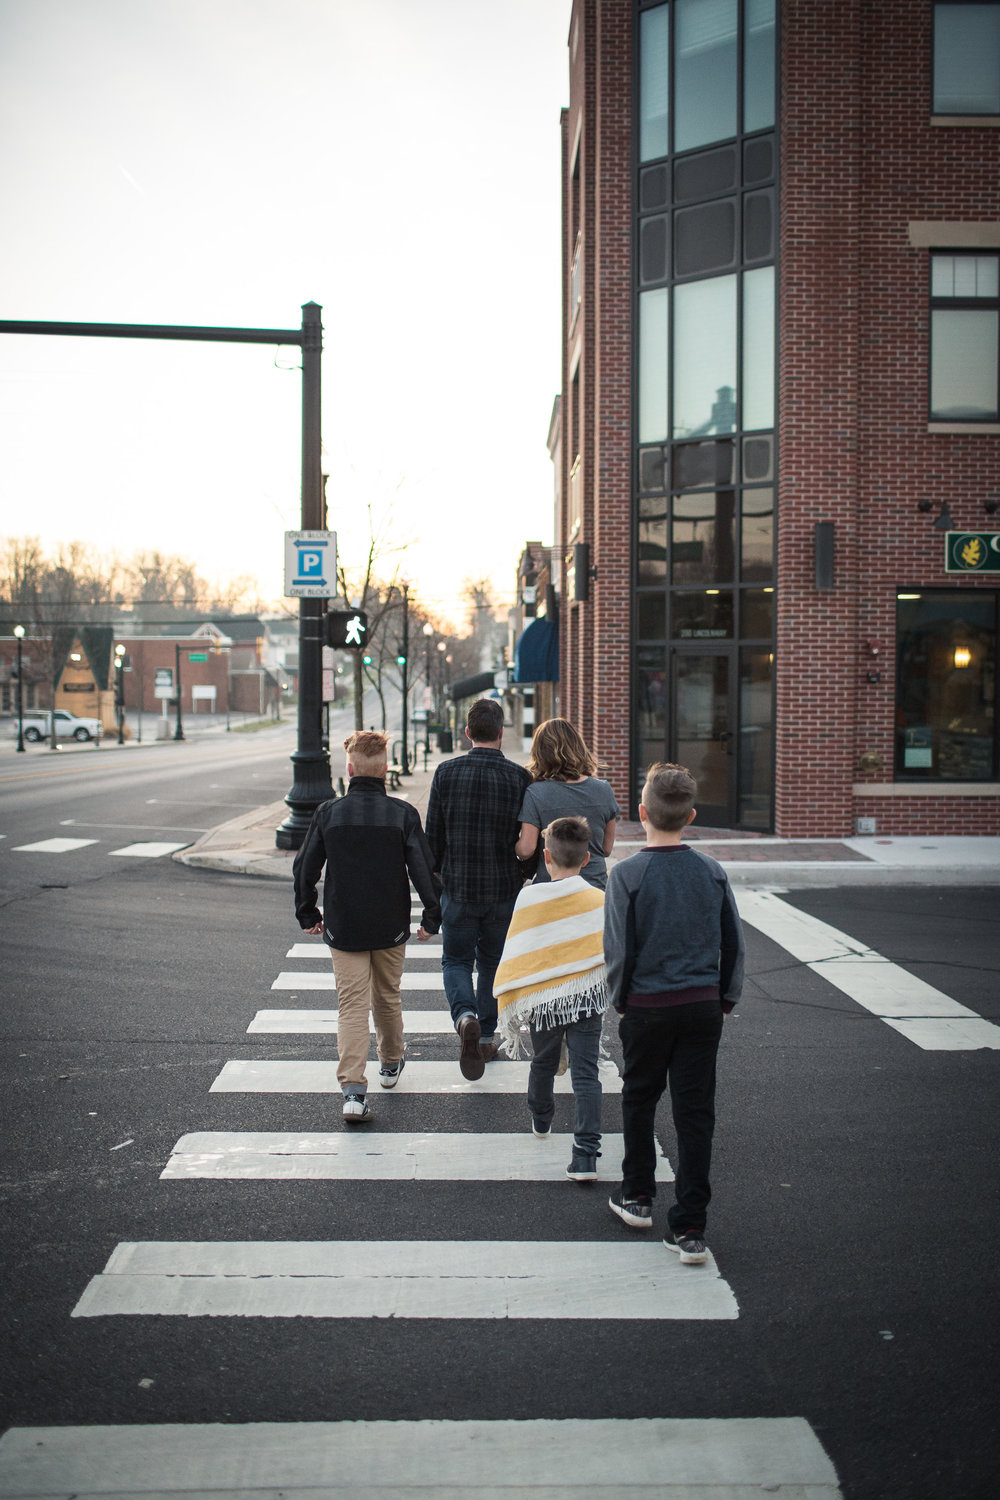 Downtown Valparaiso, Farm Family Sunrise Session, Laura Duggleby Photography, Powerful, Connected, Exploration-10.JPG